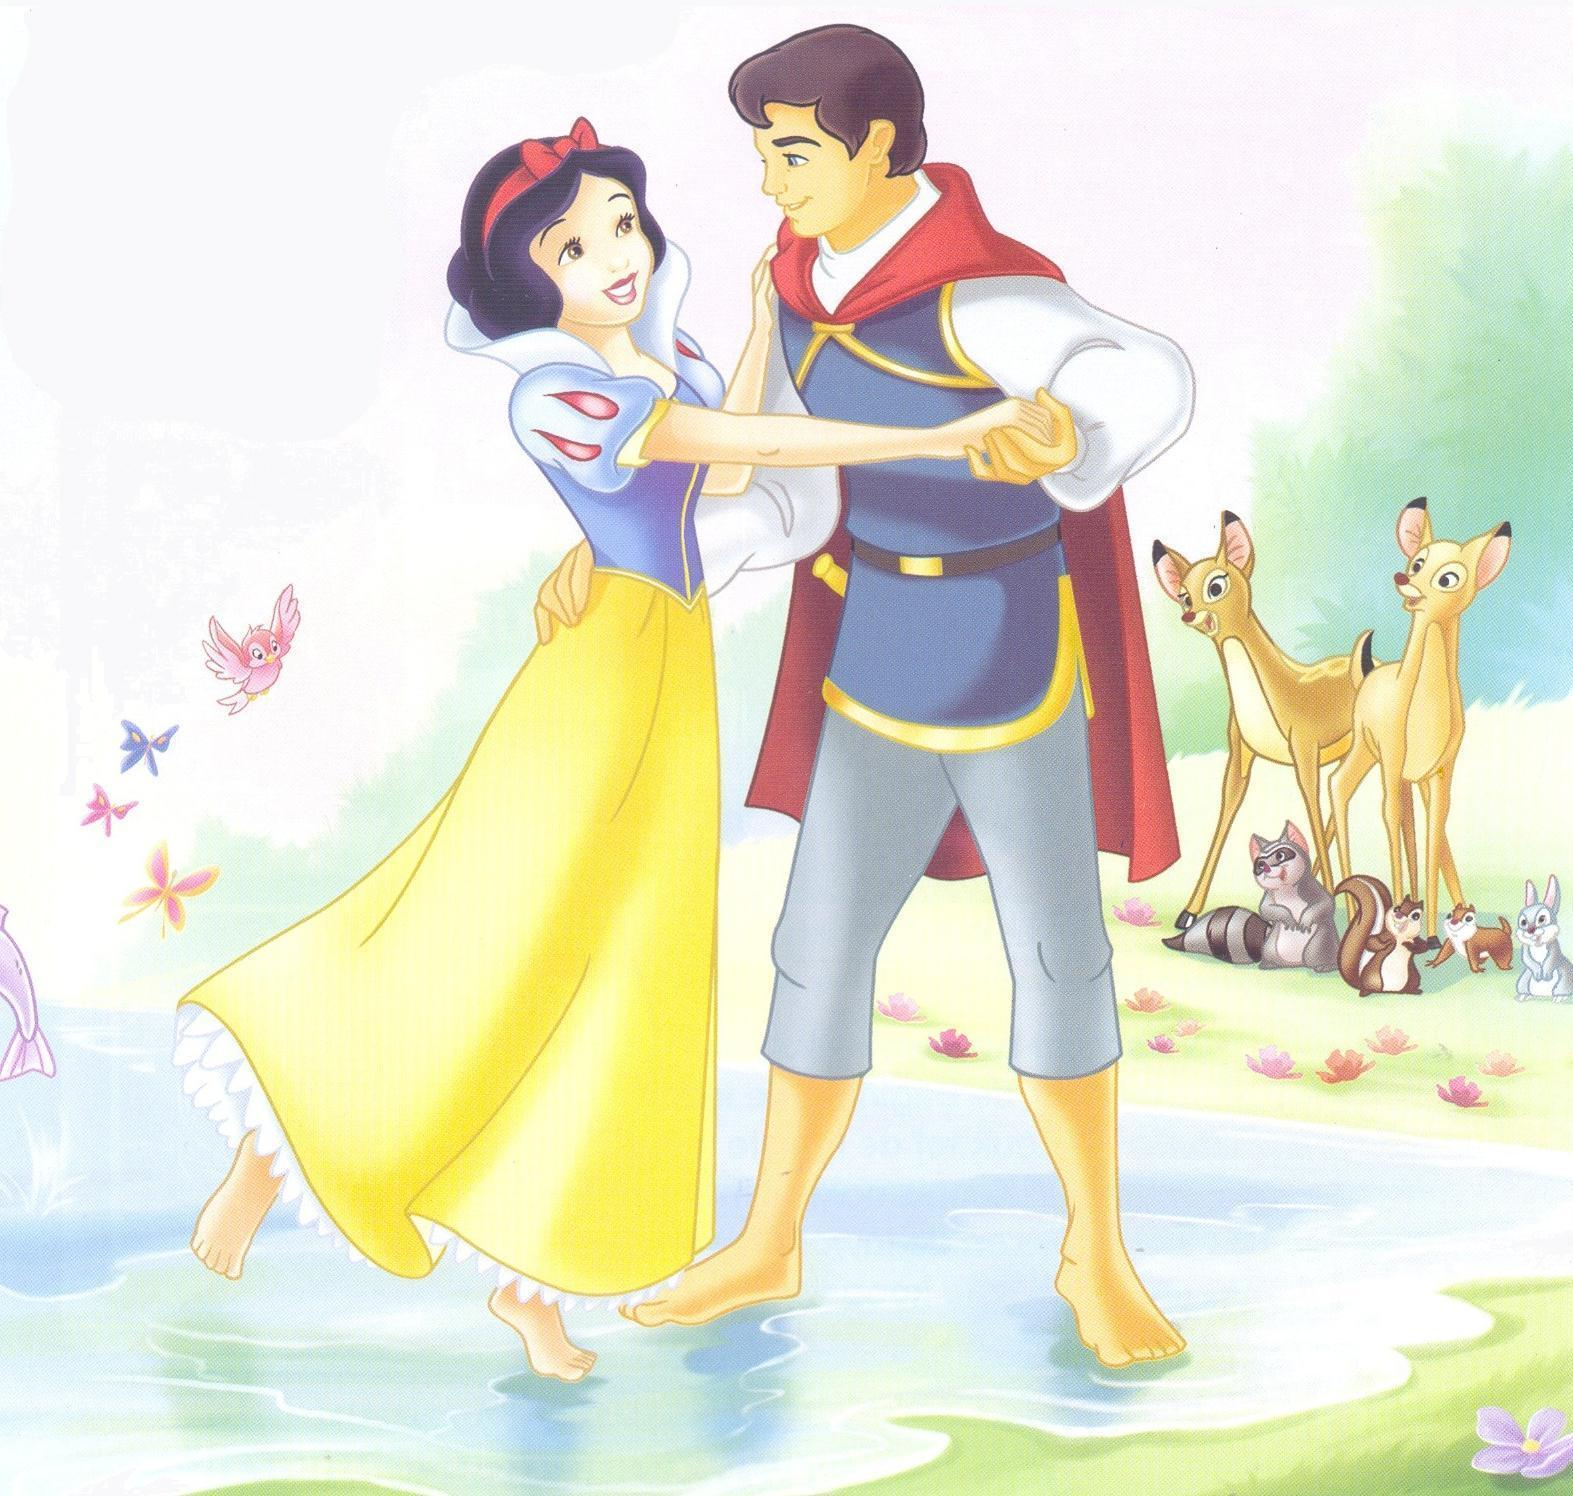 Princess Snow White and Prince Cartoon